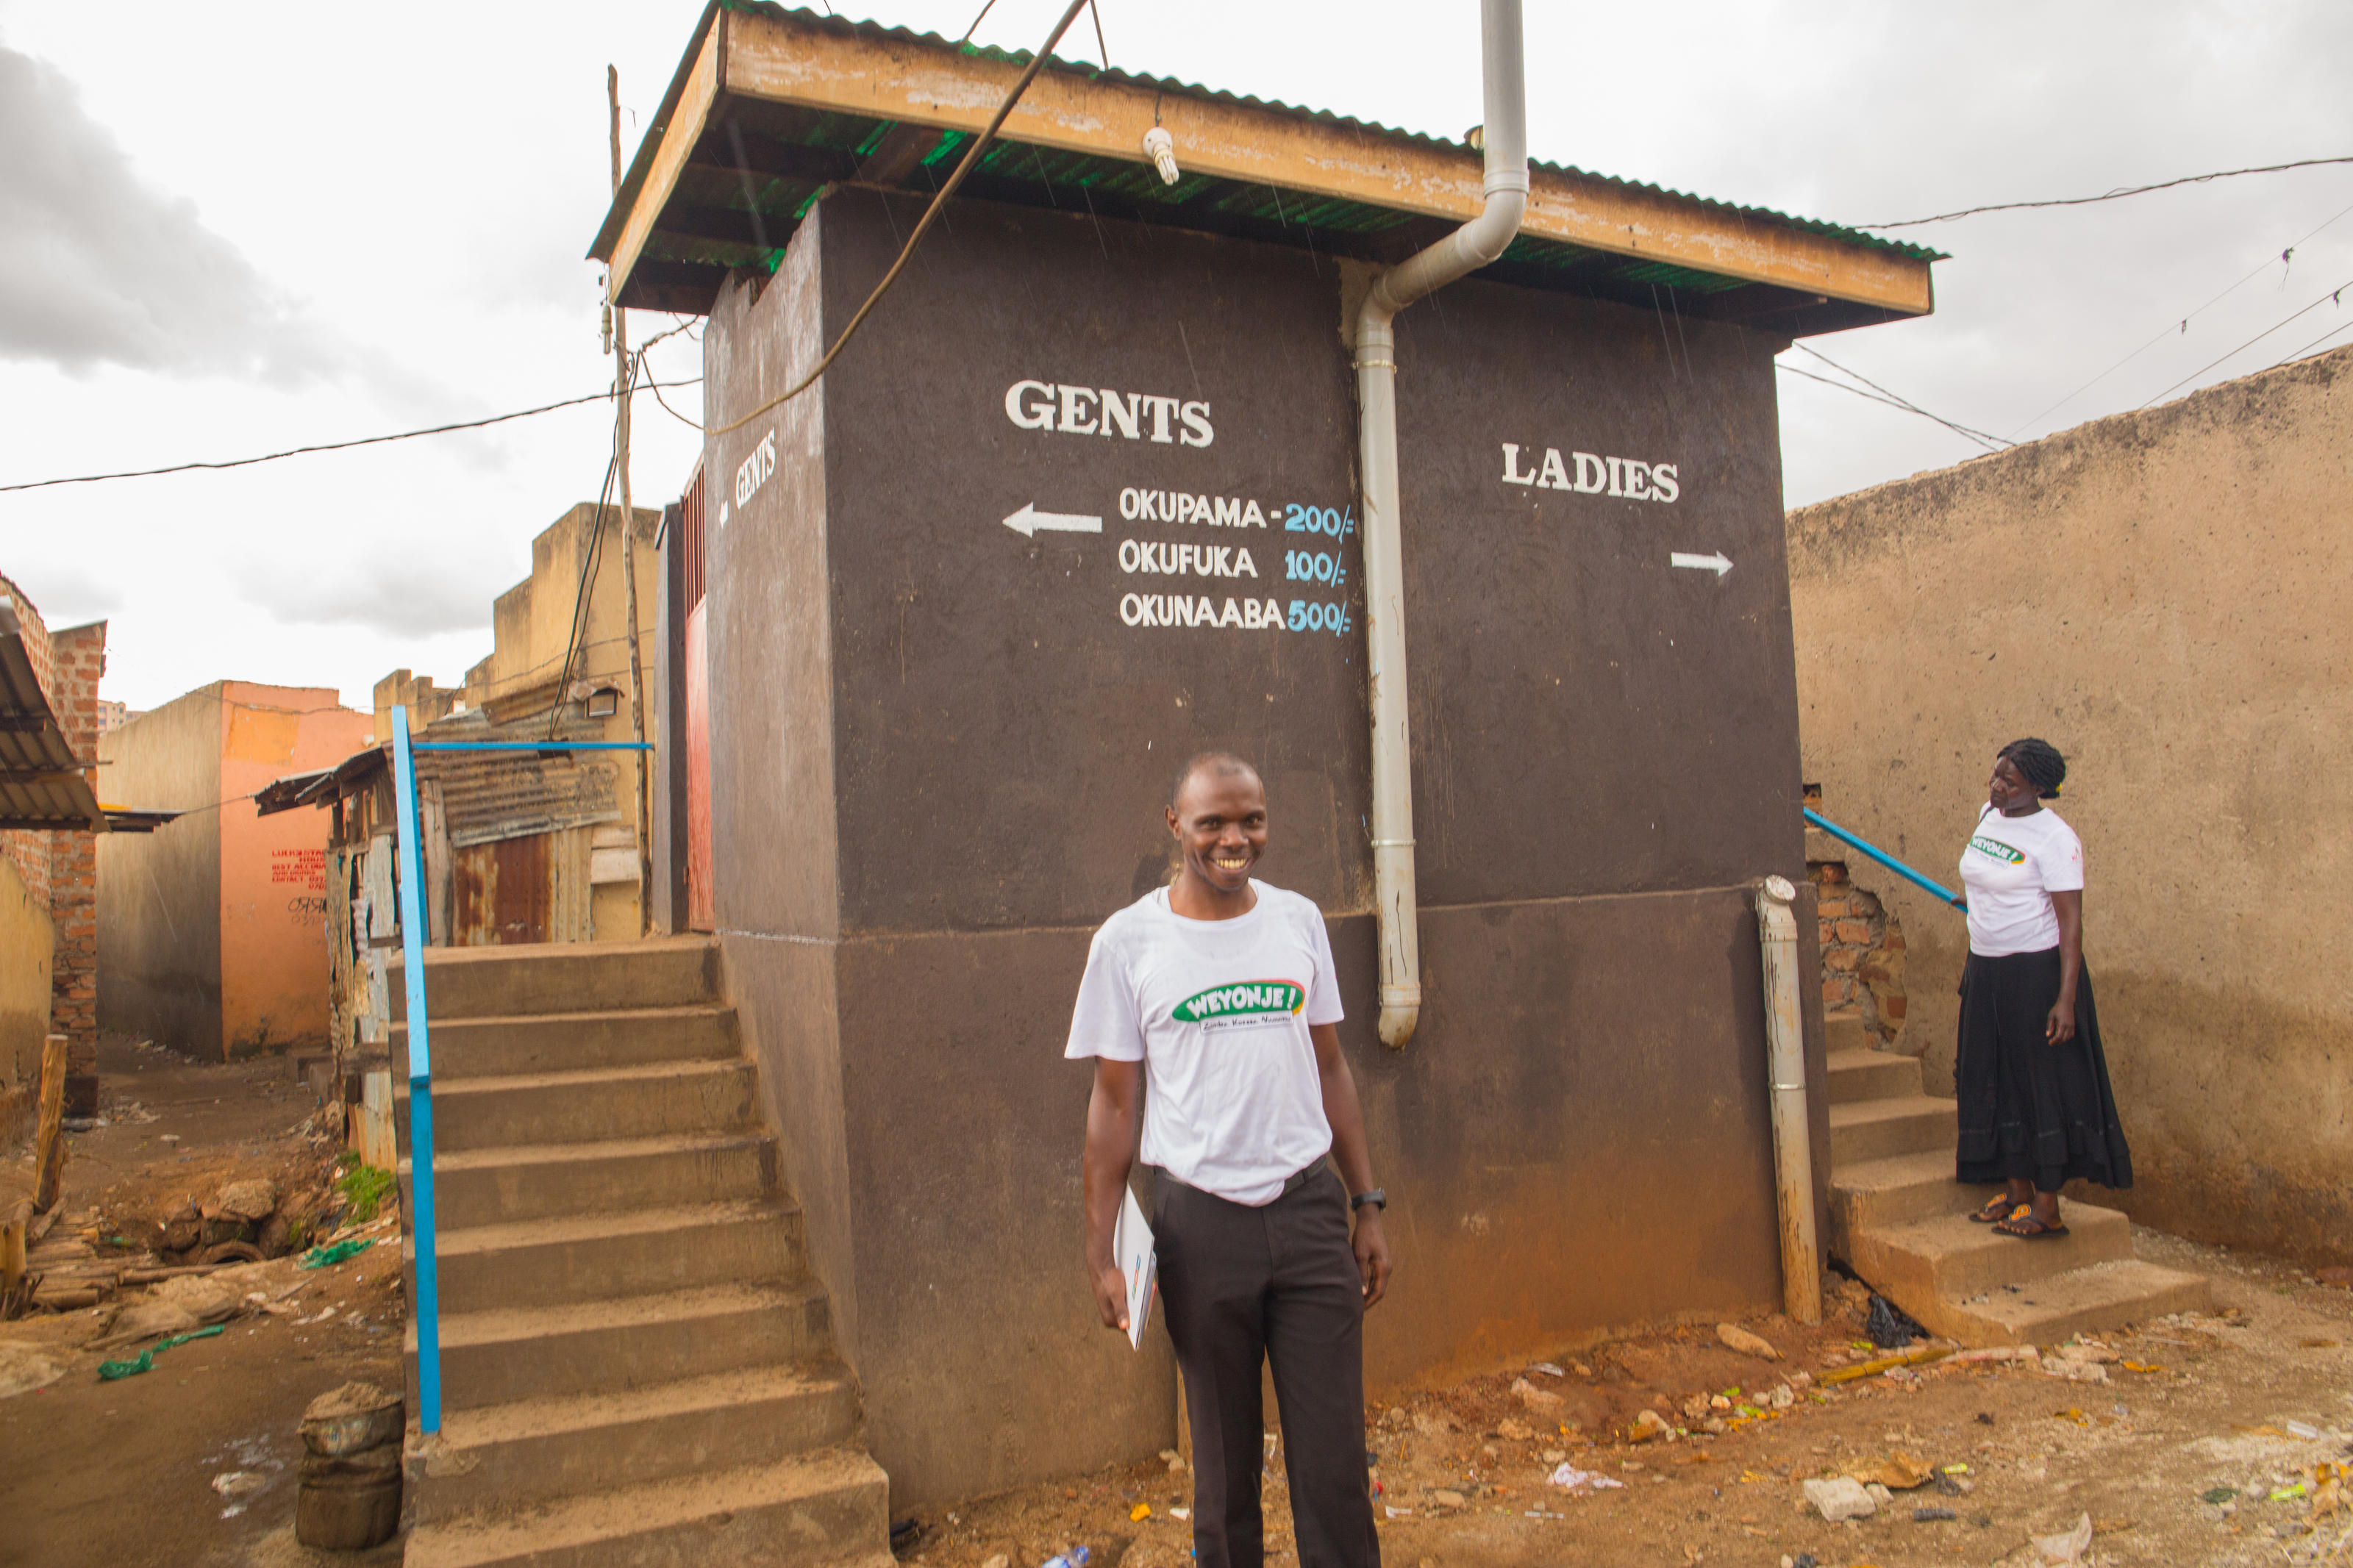 tumwine-christopher-31-a-member-of-the-kamwokya-community-action-team-on-wash-inspecting-a-toilet-that-has-been-recently-constructed-by-a-landlord-during-a-house-to-house-wash-monitoring-exercise-